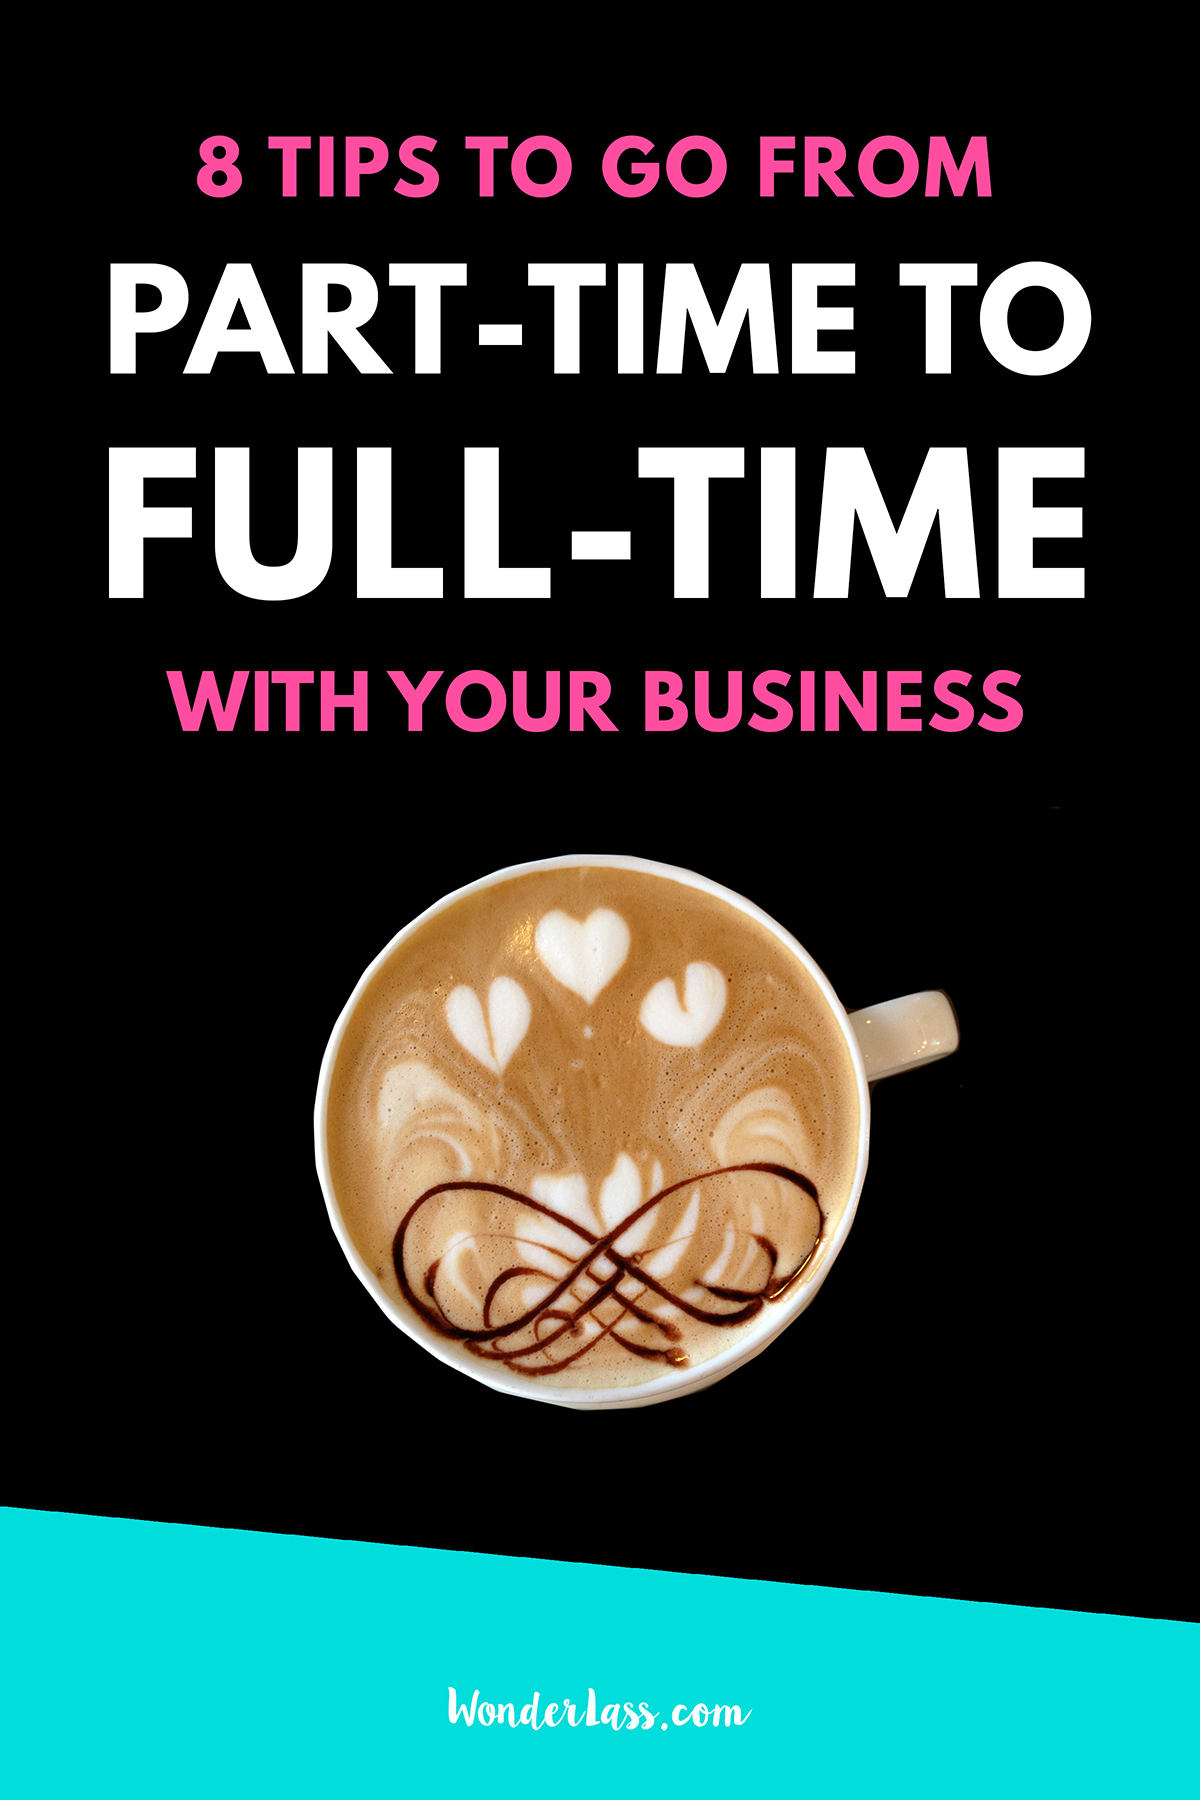 8 Tips to Take Your Business from Part-Time to Full-Time   Wonderlass